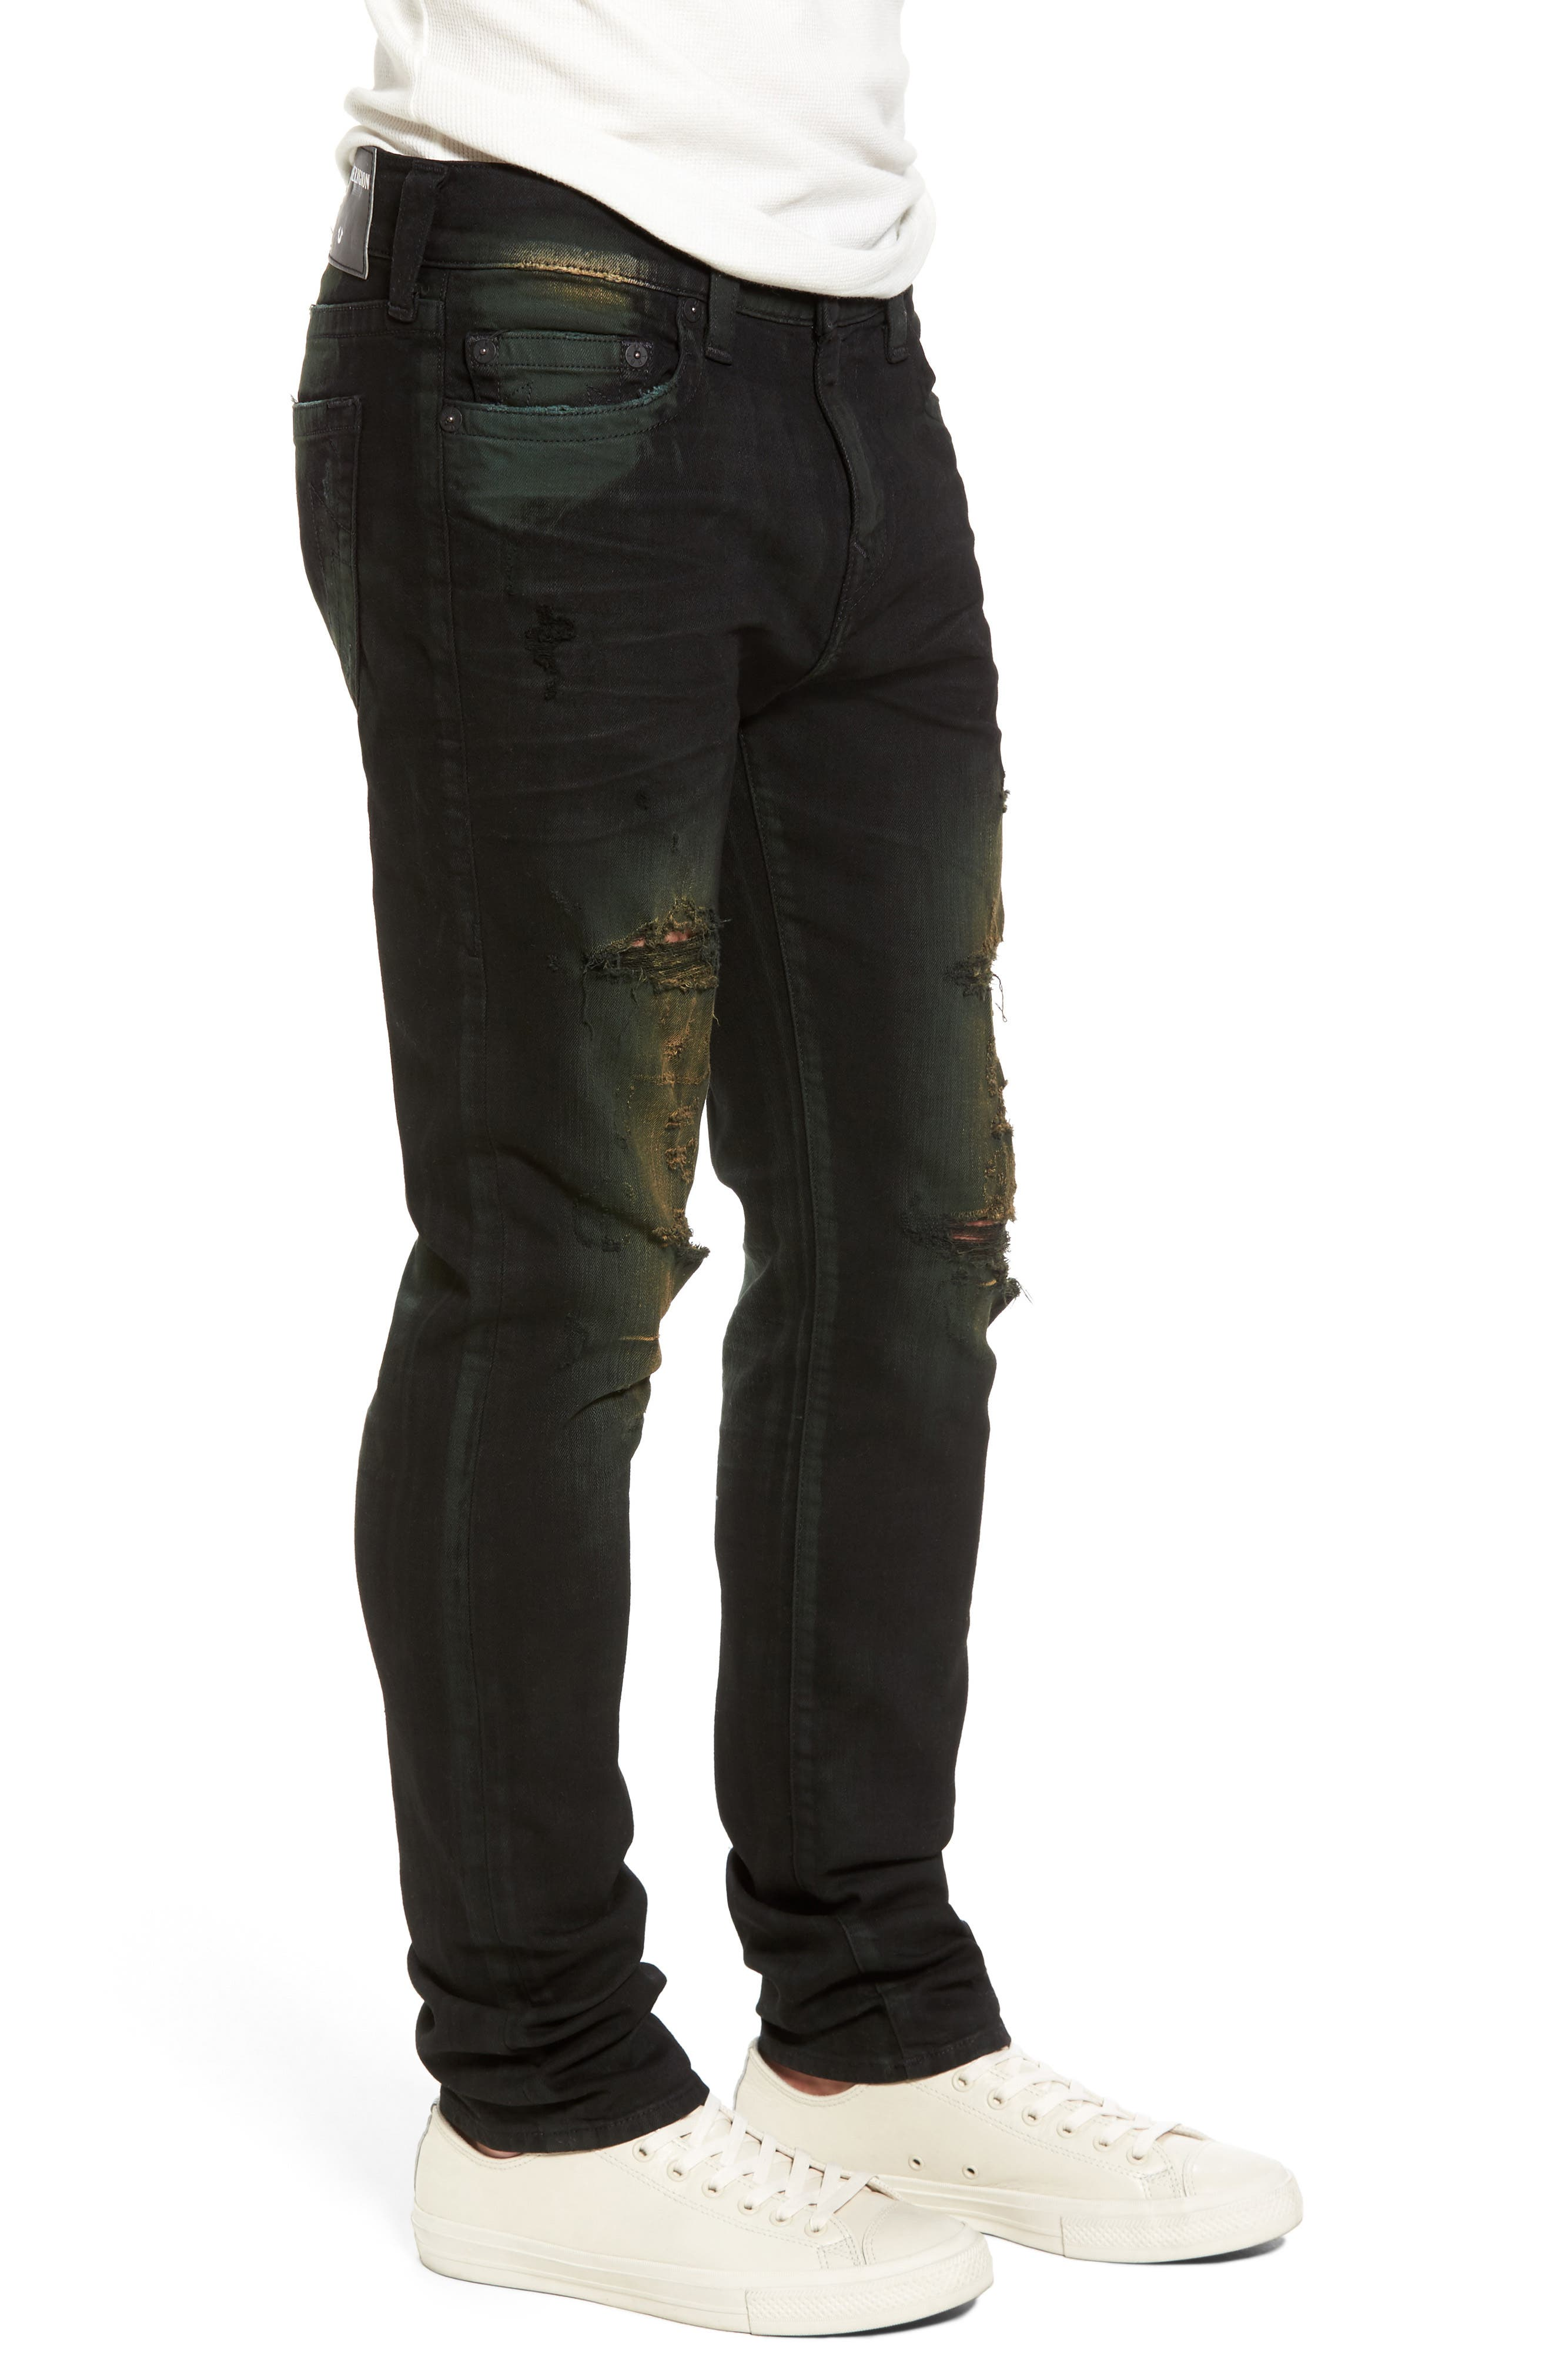 Rocco Skinny Fit Jeans,                             Alternate thumbnail 3, color,                             GREEN BLAZE